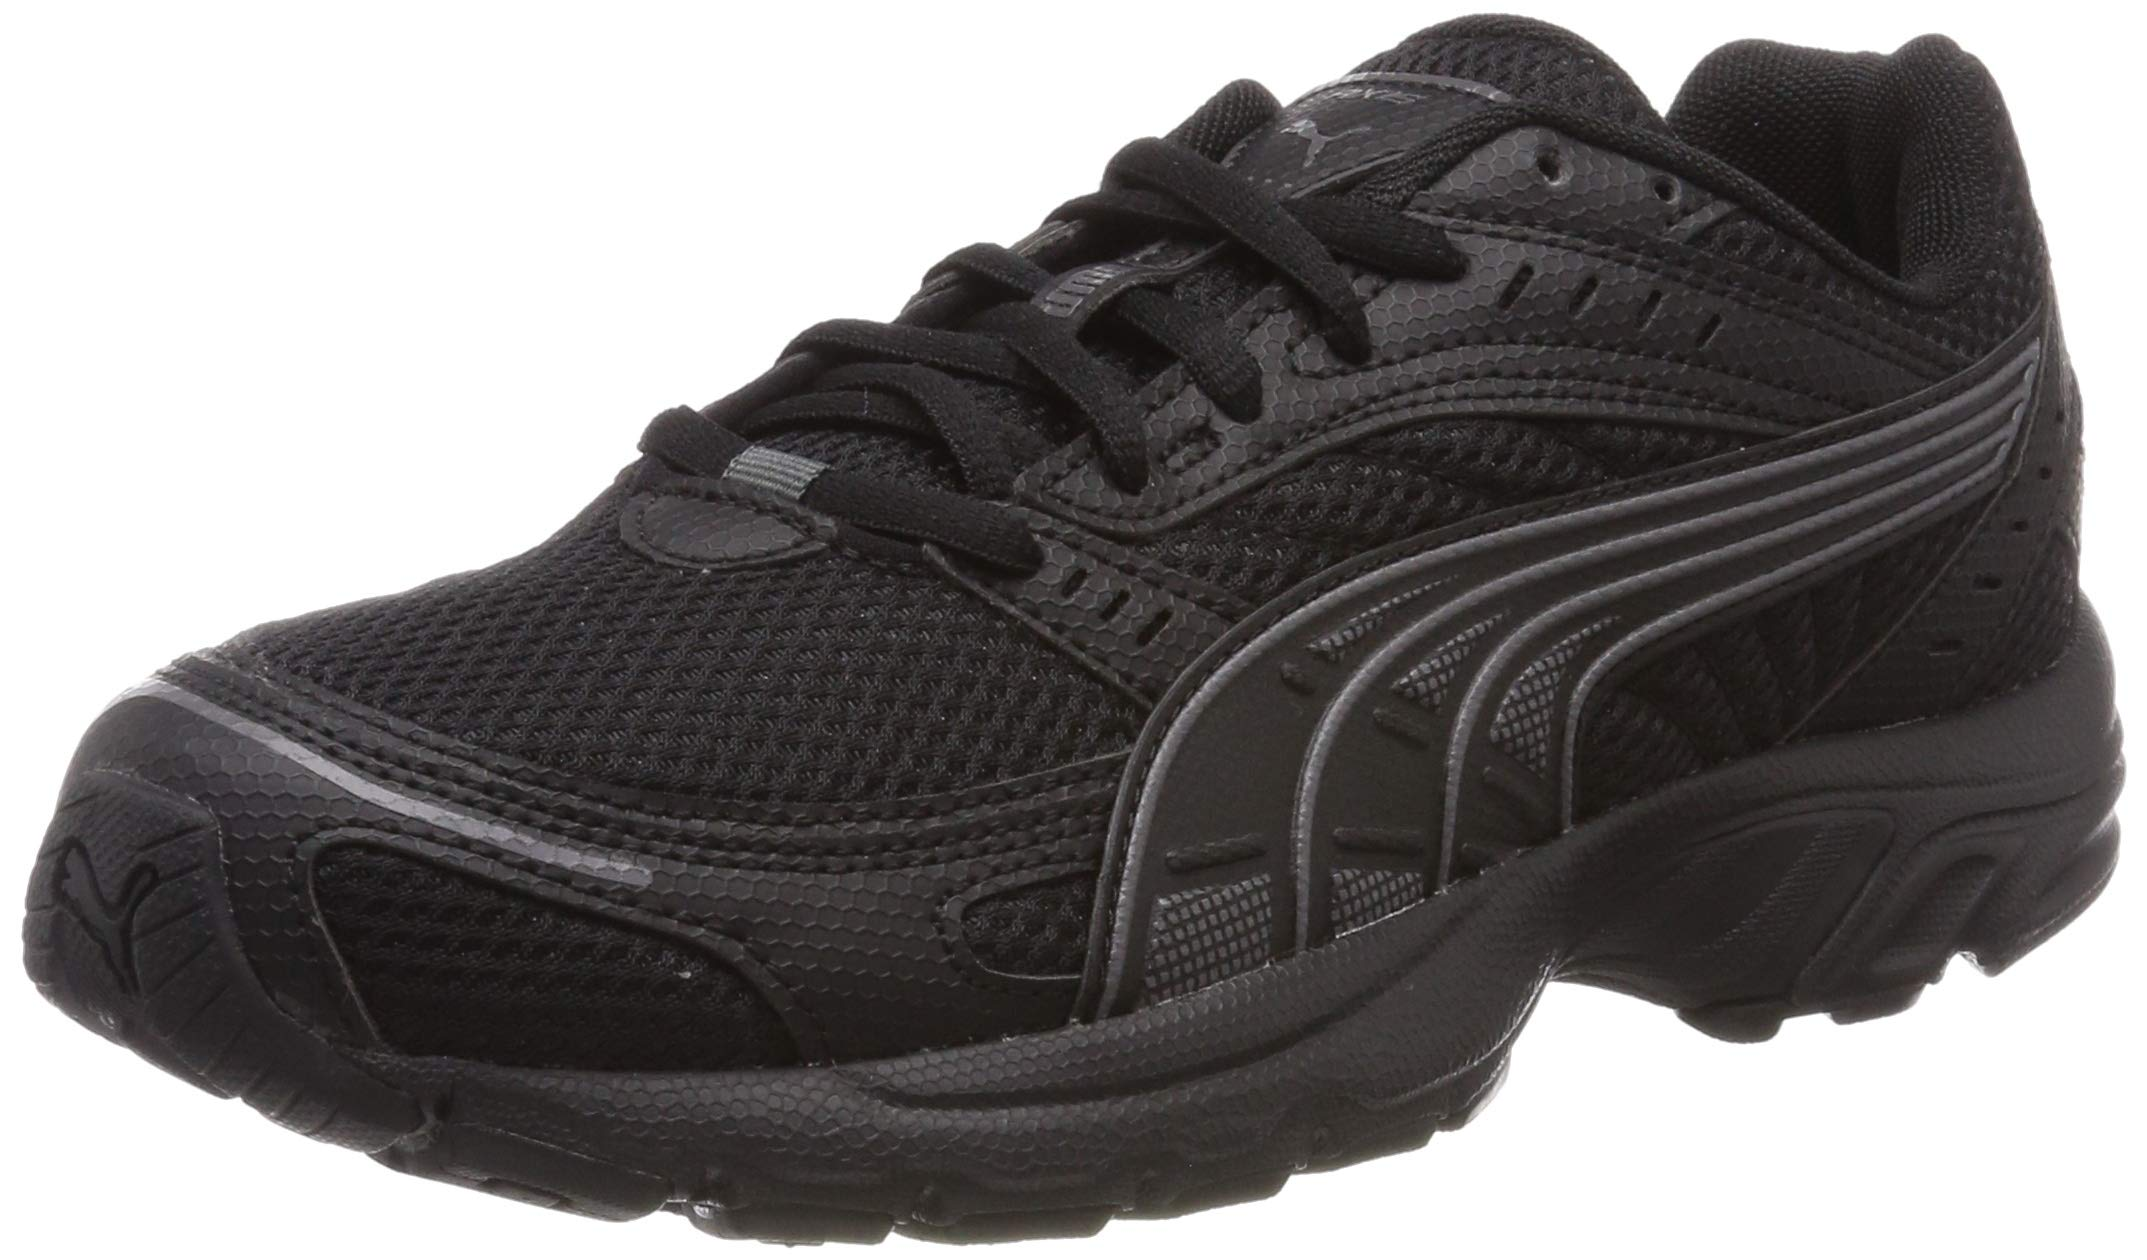 puma pas cher taille 42,correspondance taille chaussures